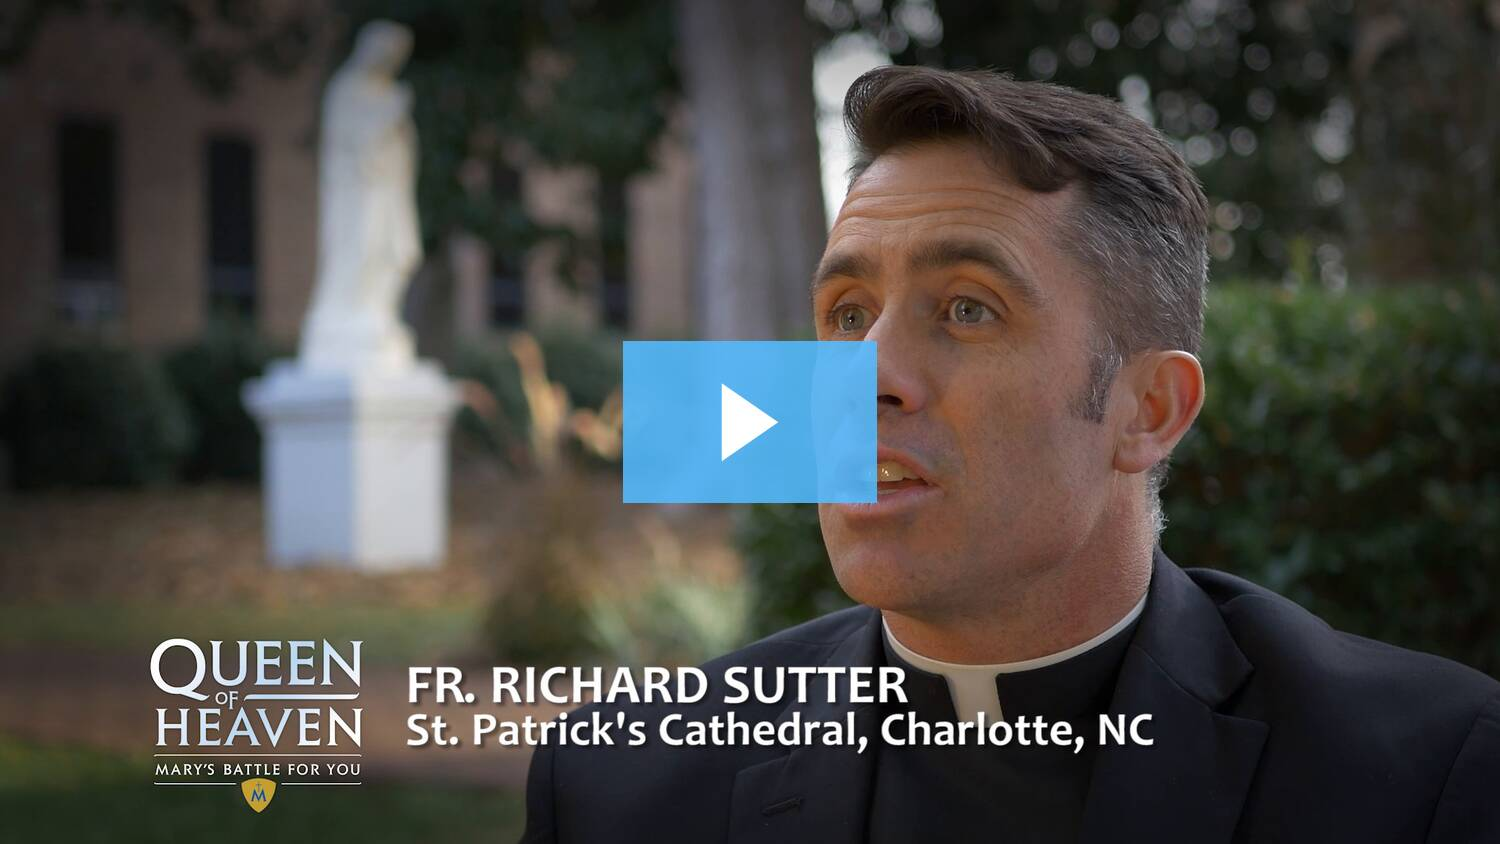 Fr. Richard Sutter